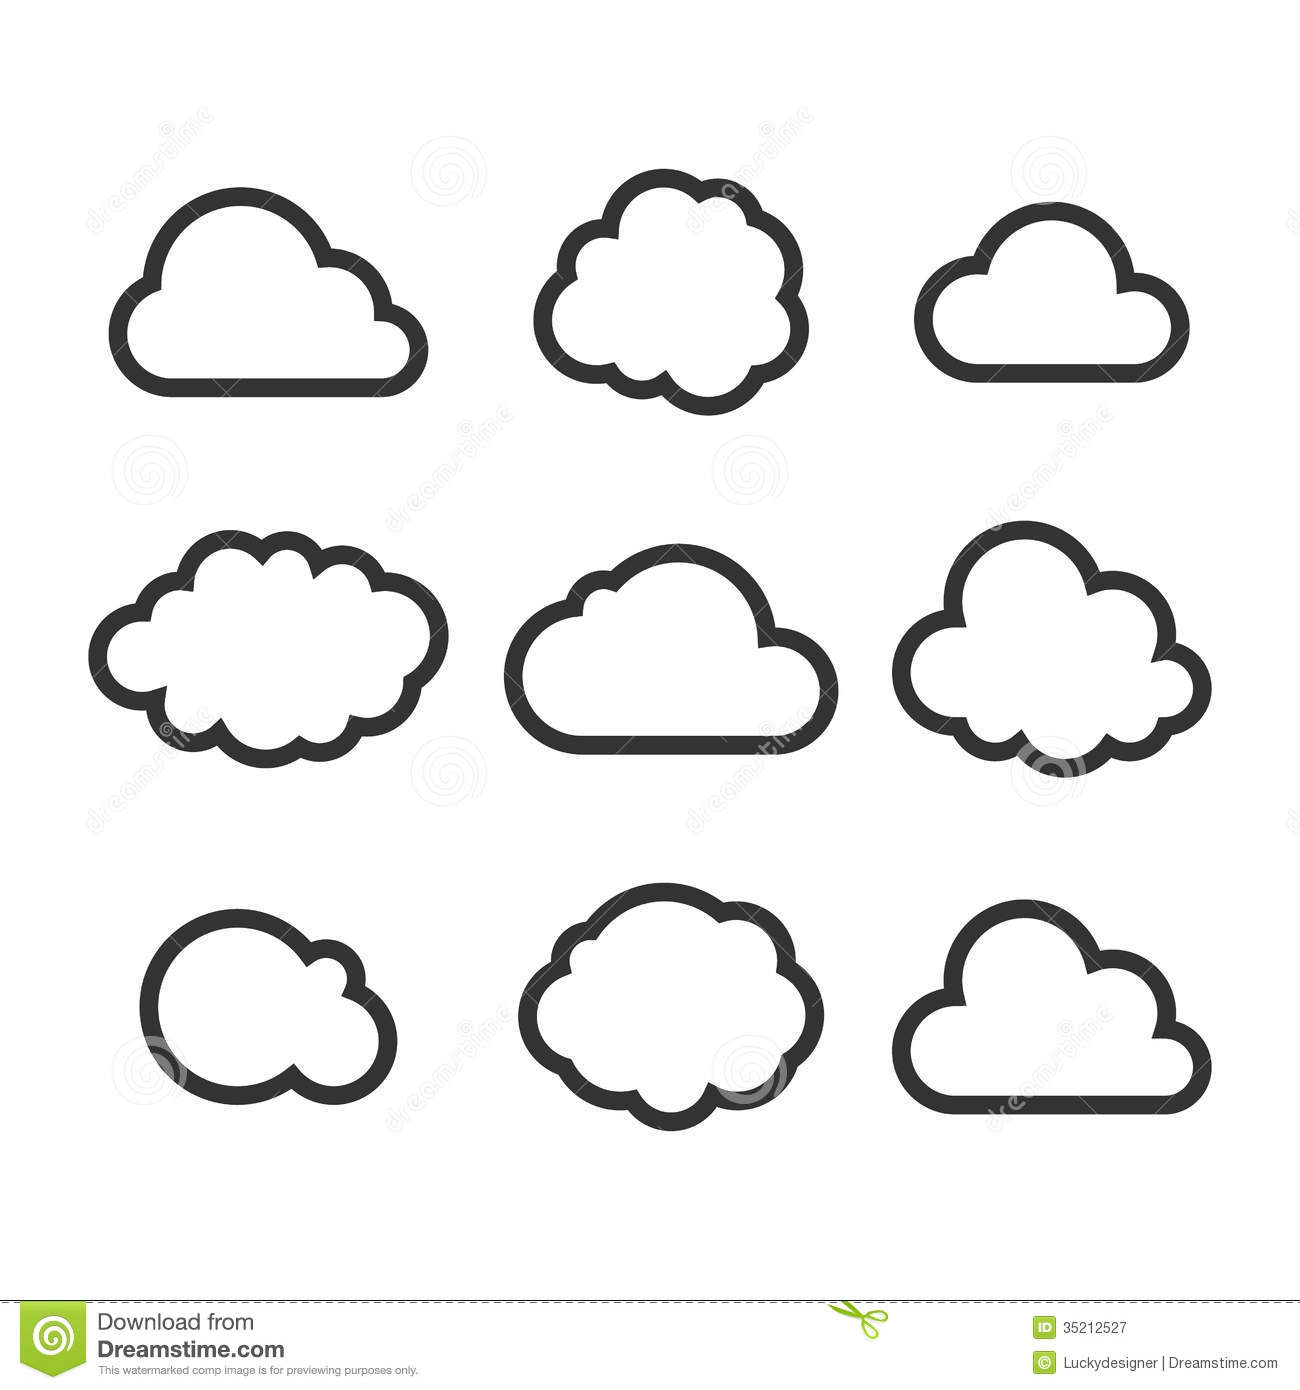 Royalty Free Stock Photography: Cloud Icon Set. Image: 35212527